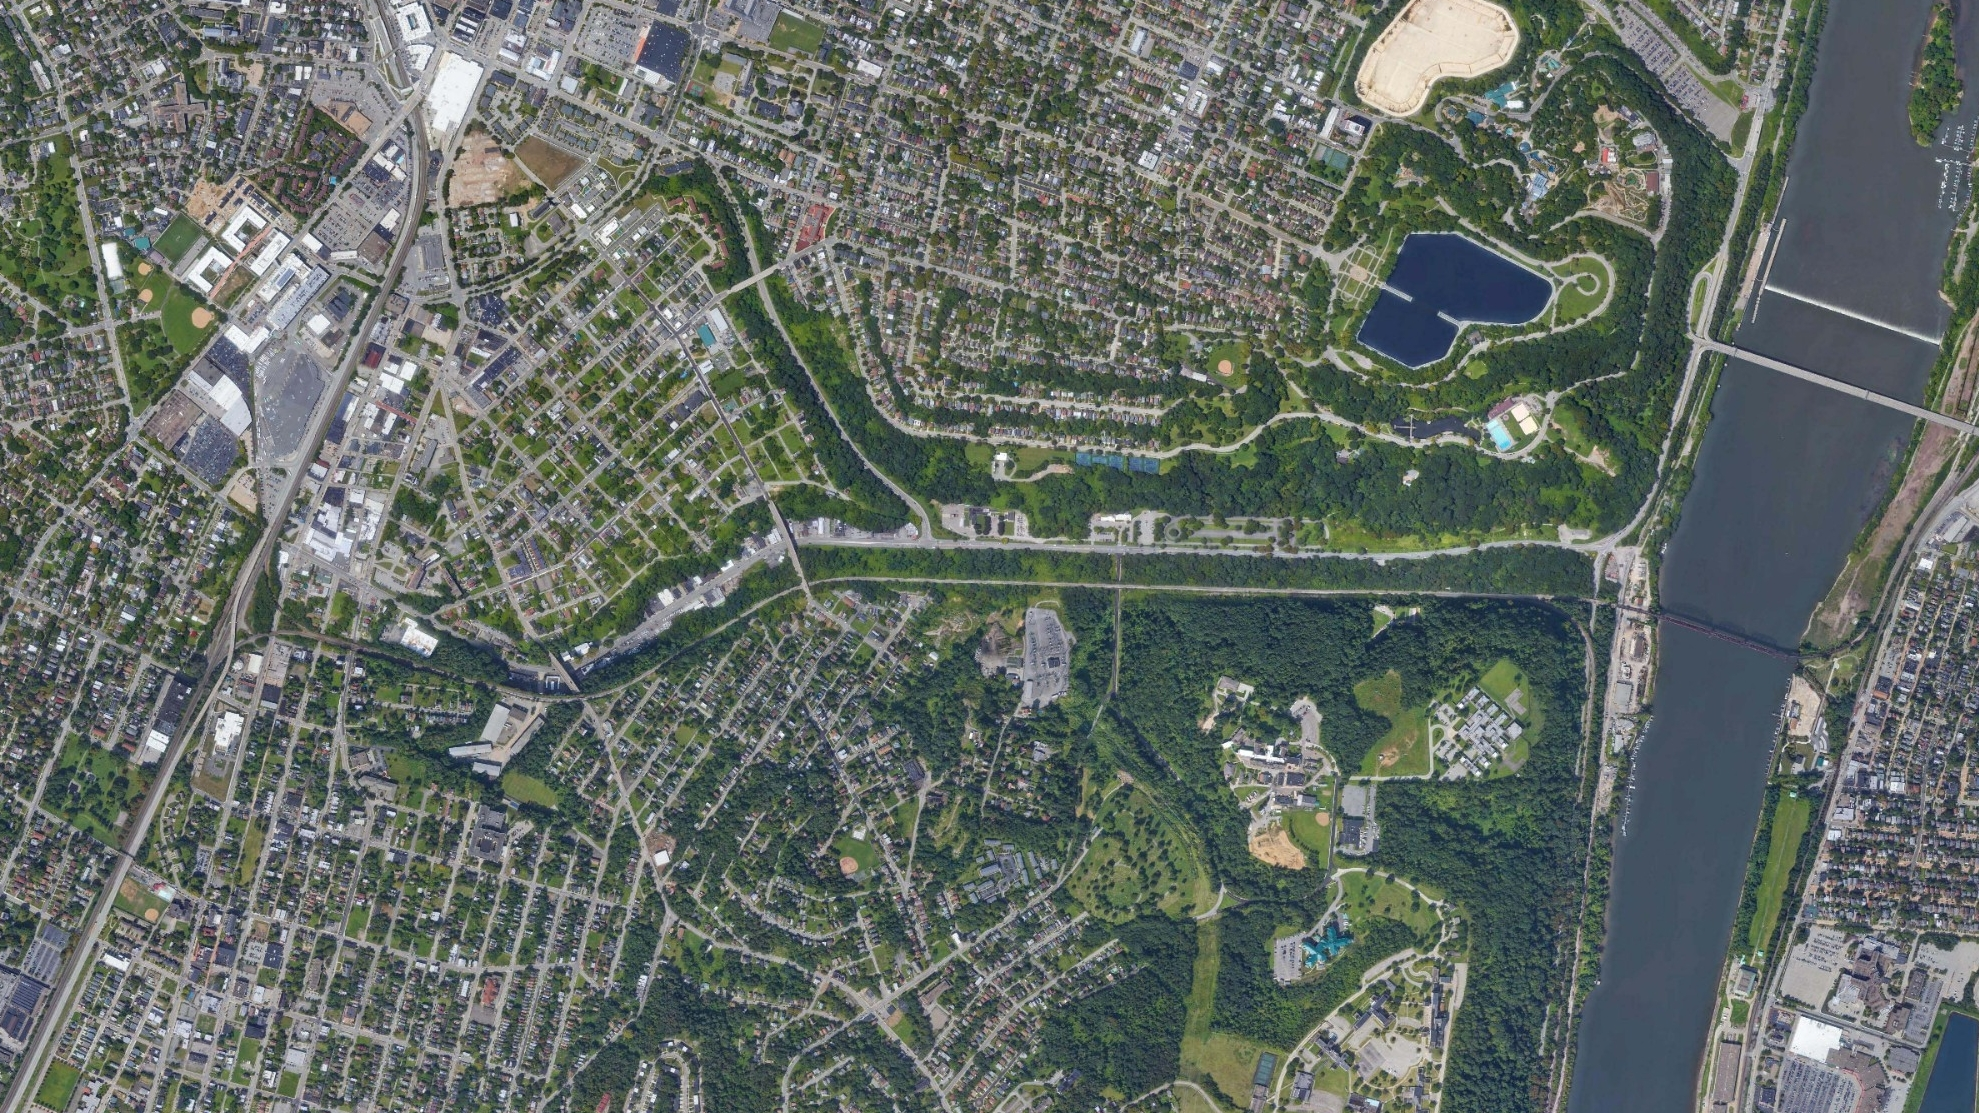 An aerial image of Pittsburgh city showing the catchment area surrounding Washington Boulevard.